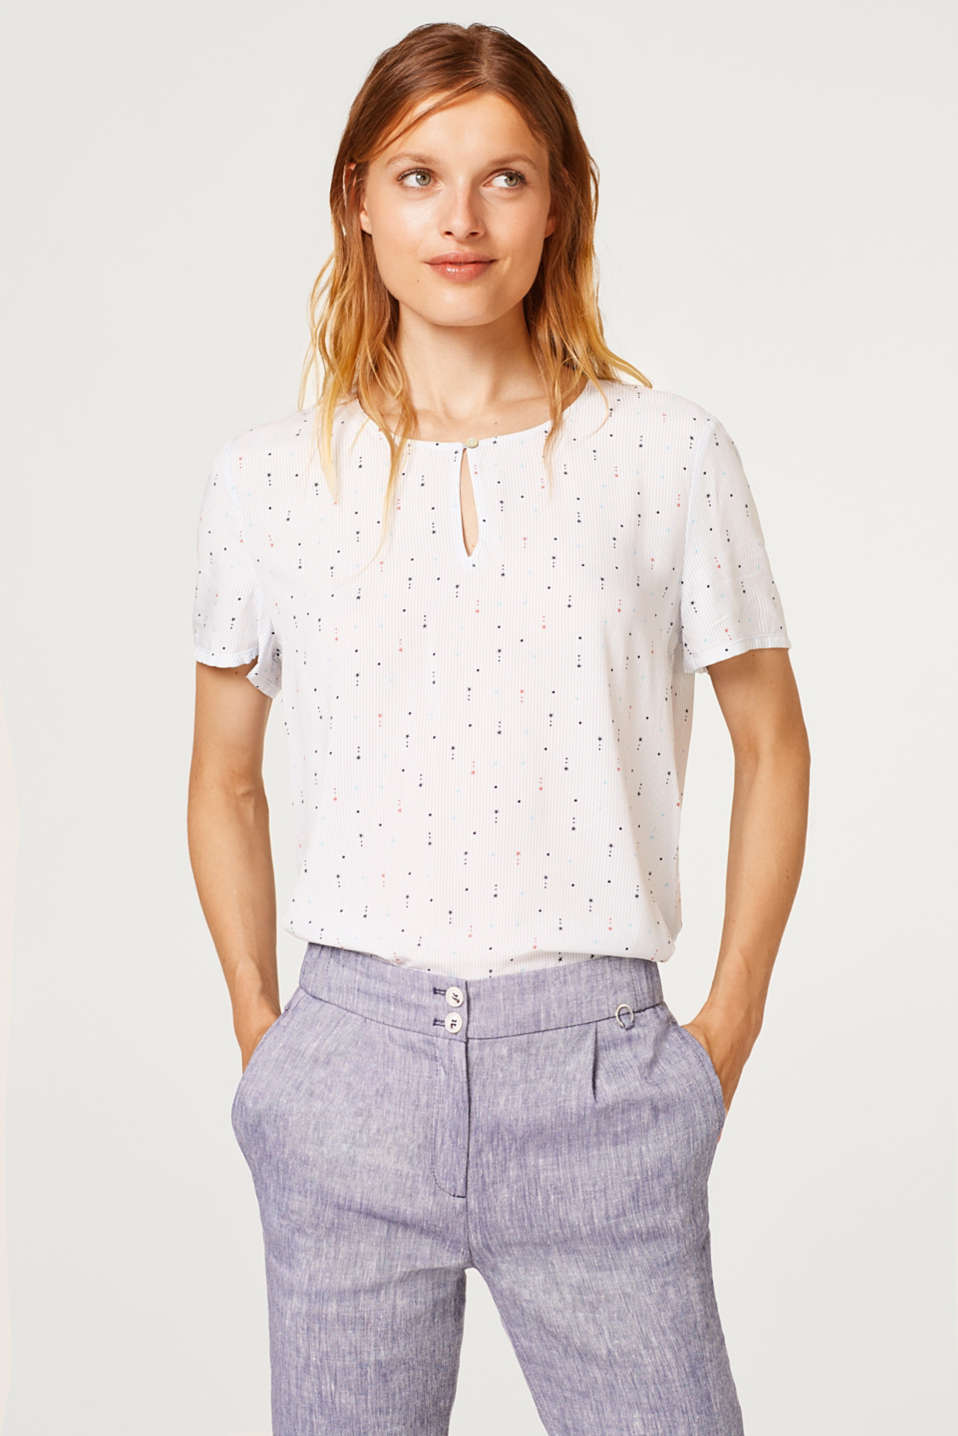 Esprit - Blouse top with an all-over print